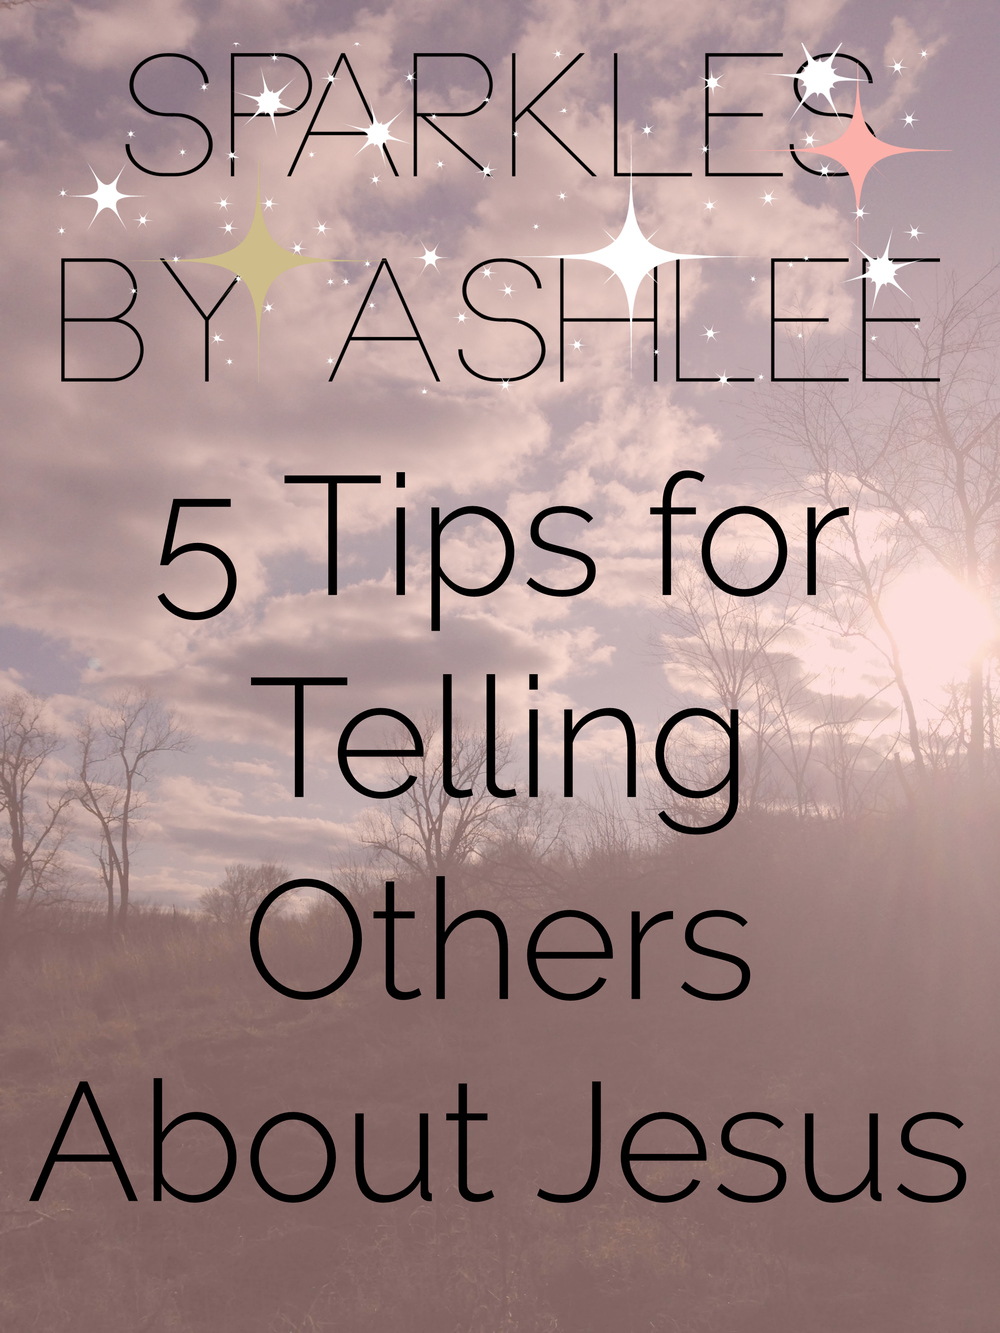 5-Tips-for-Telling-Others-About-Jesus-Sparkles-by-Ashlee.jpg